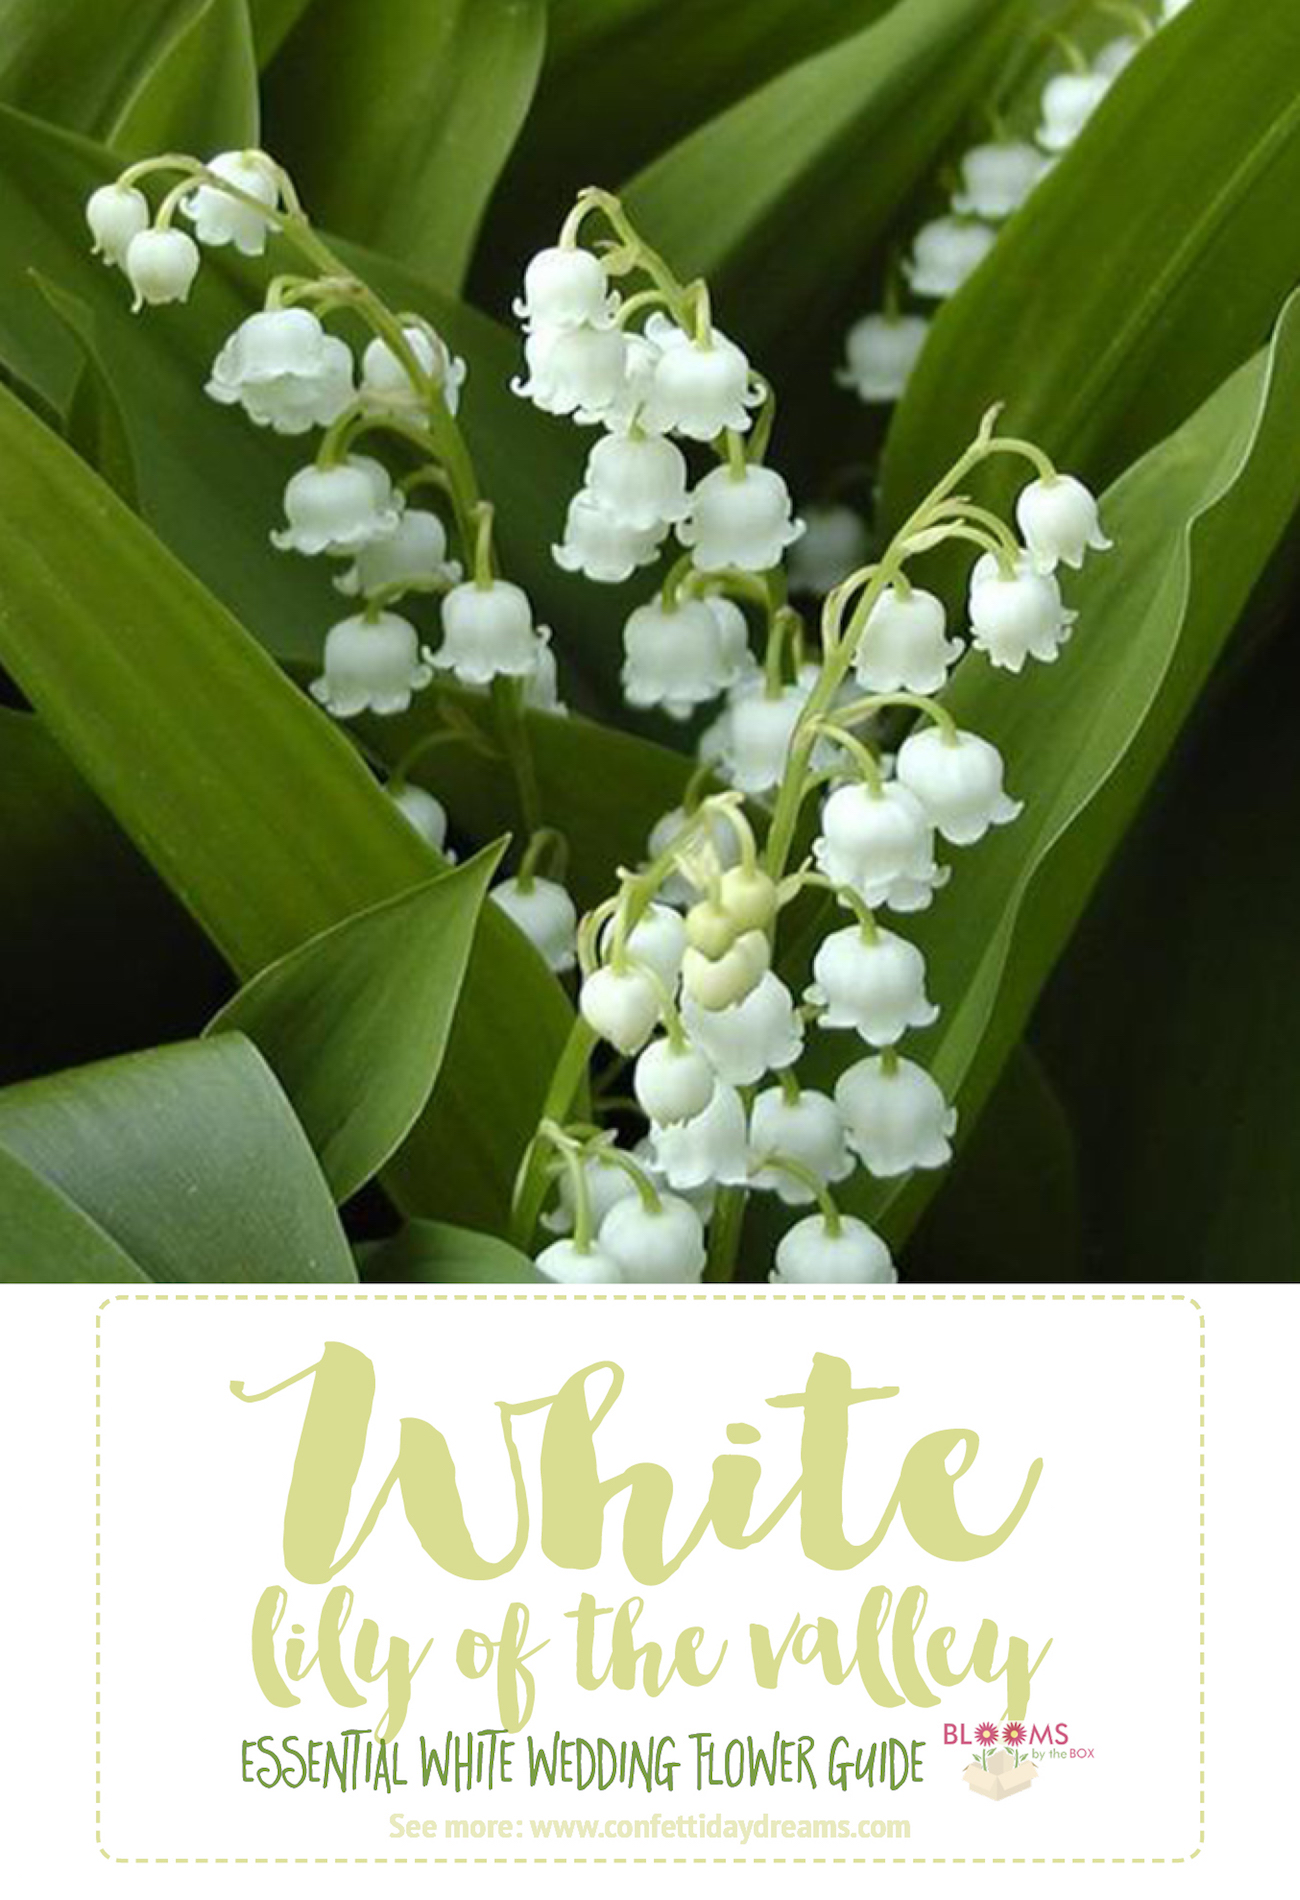 White Wedding Flowers Lily Of The Valley